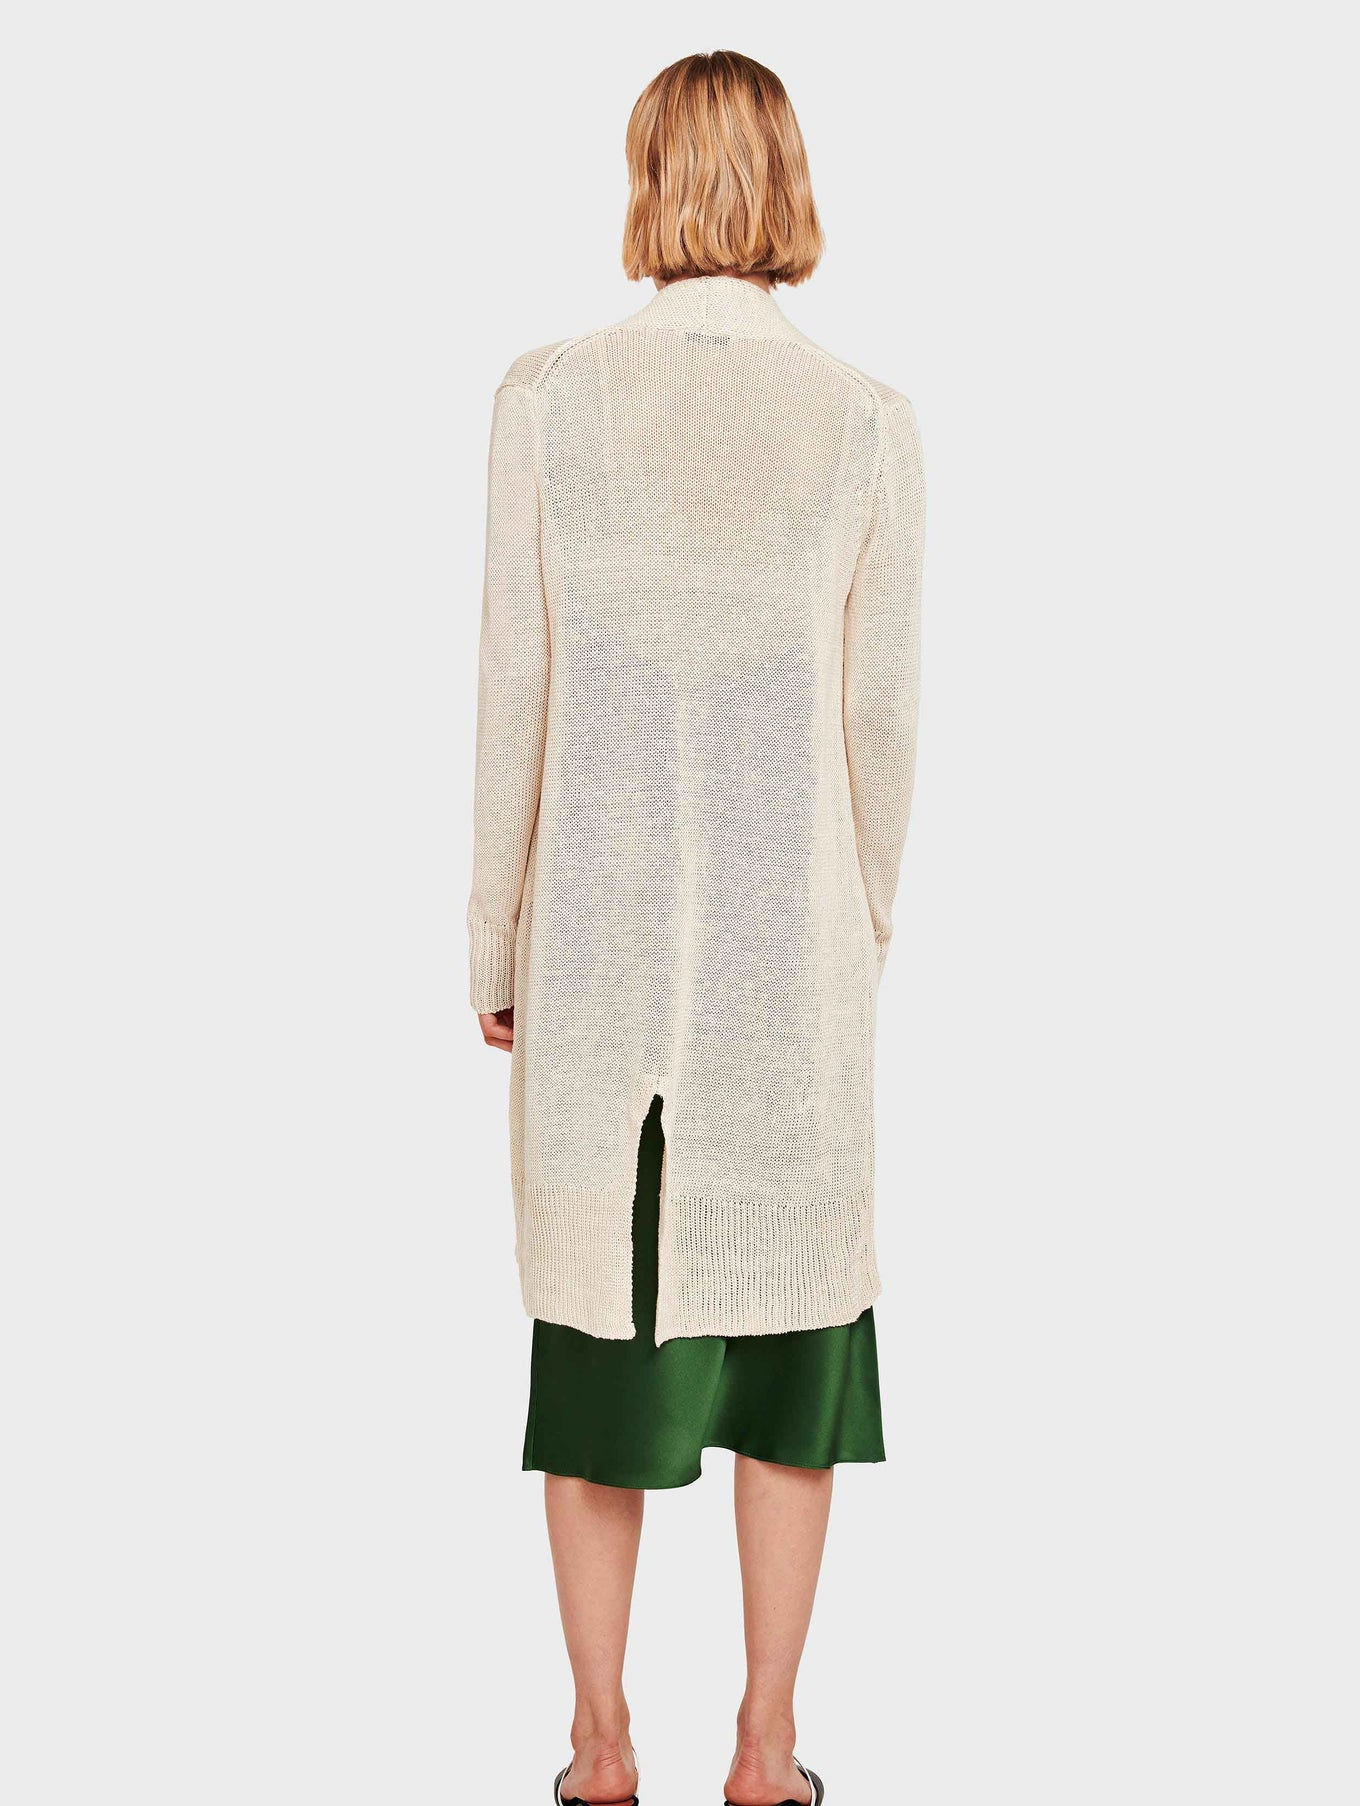 Corded Linen Long Open Cardigan - Ivory - Image 3